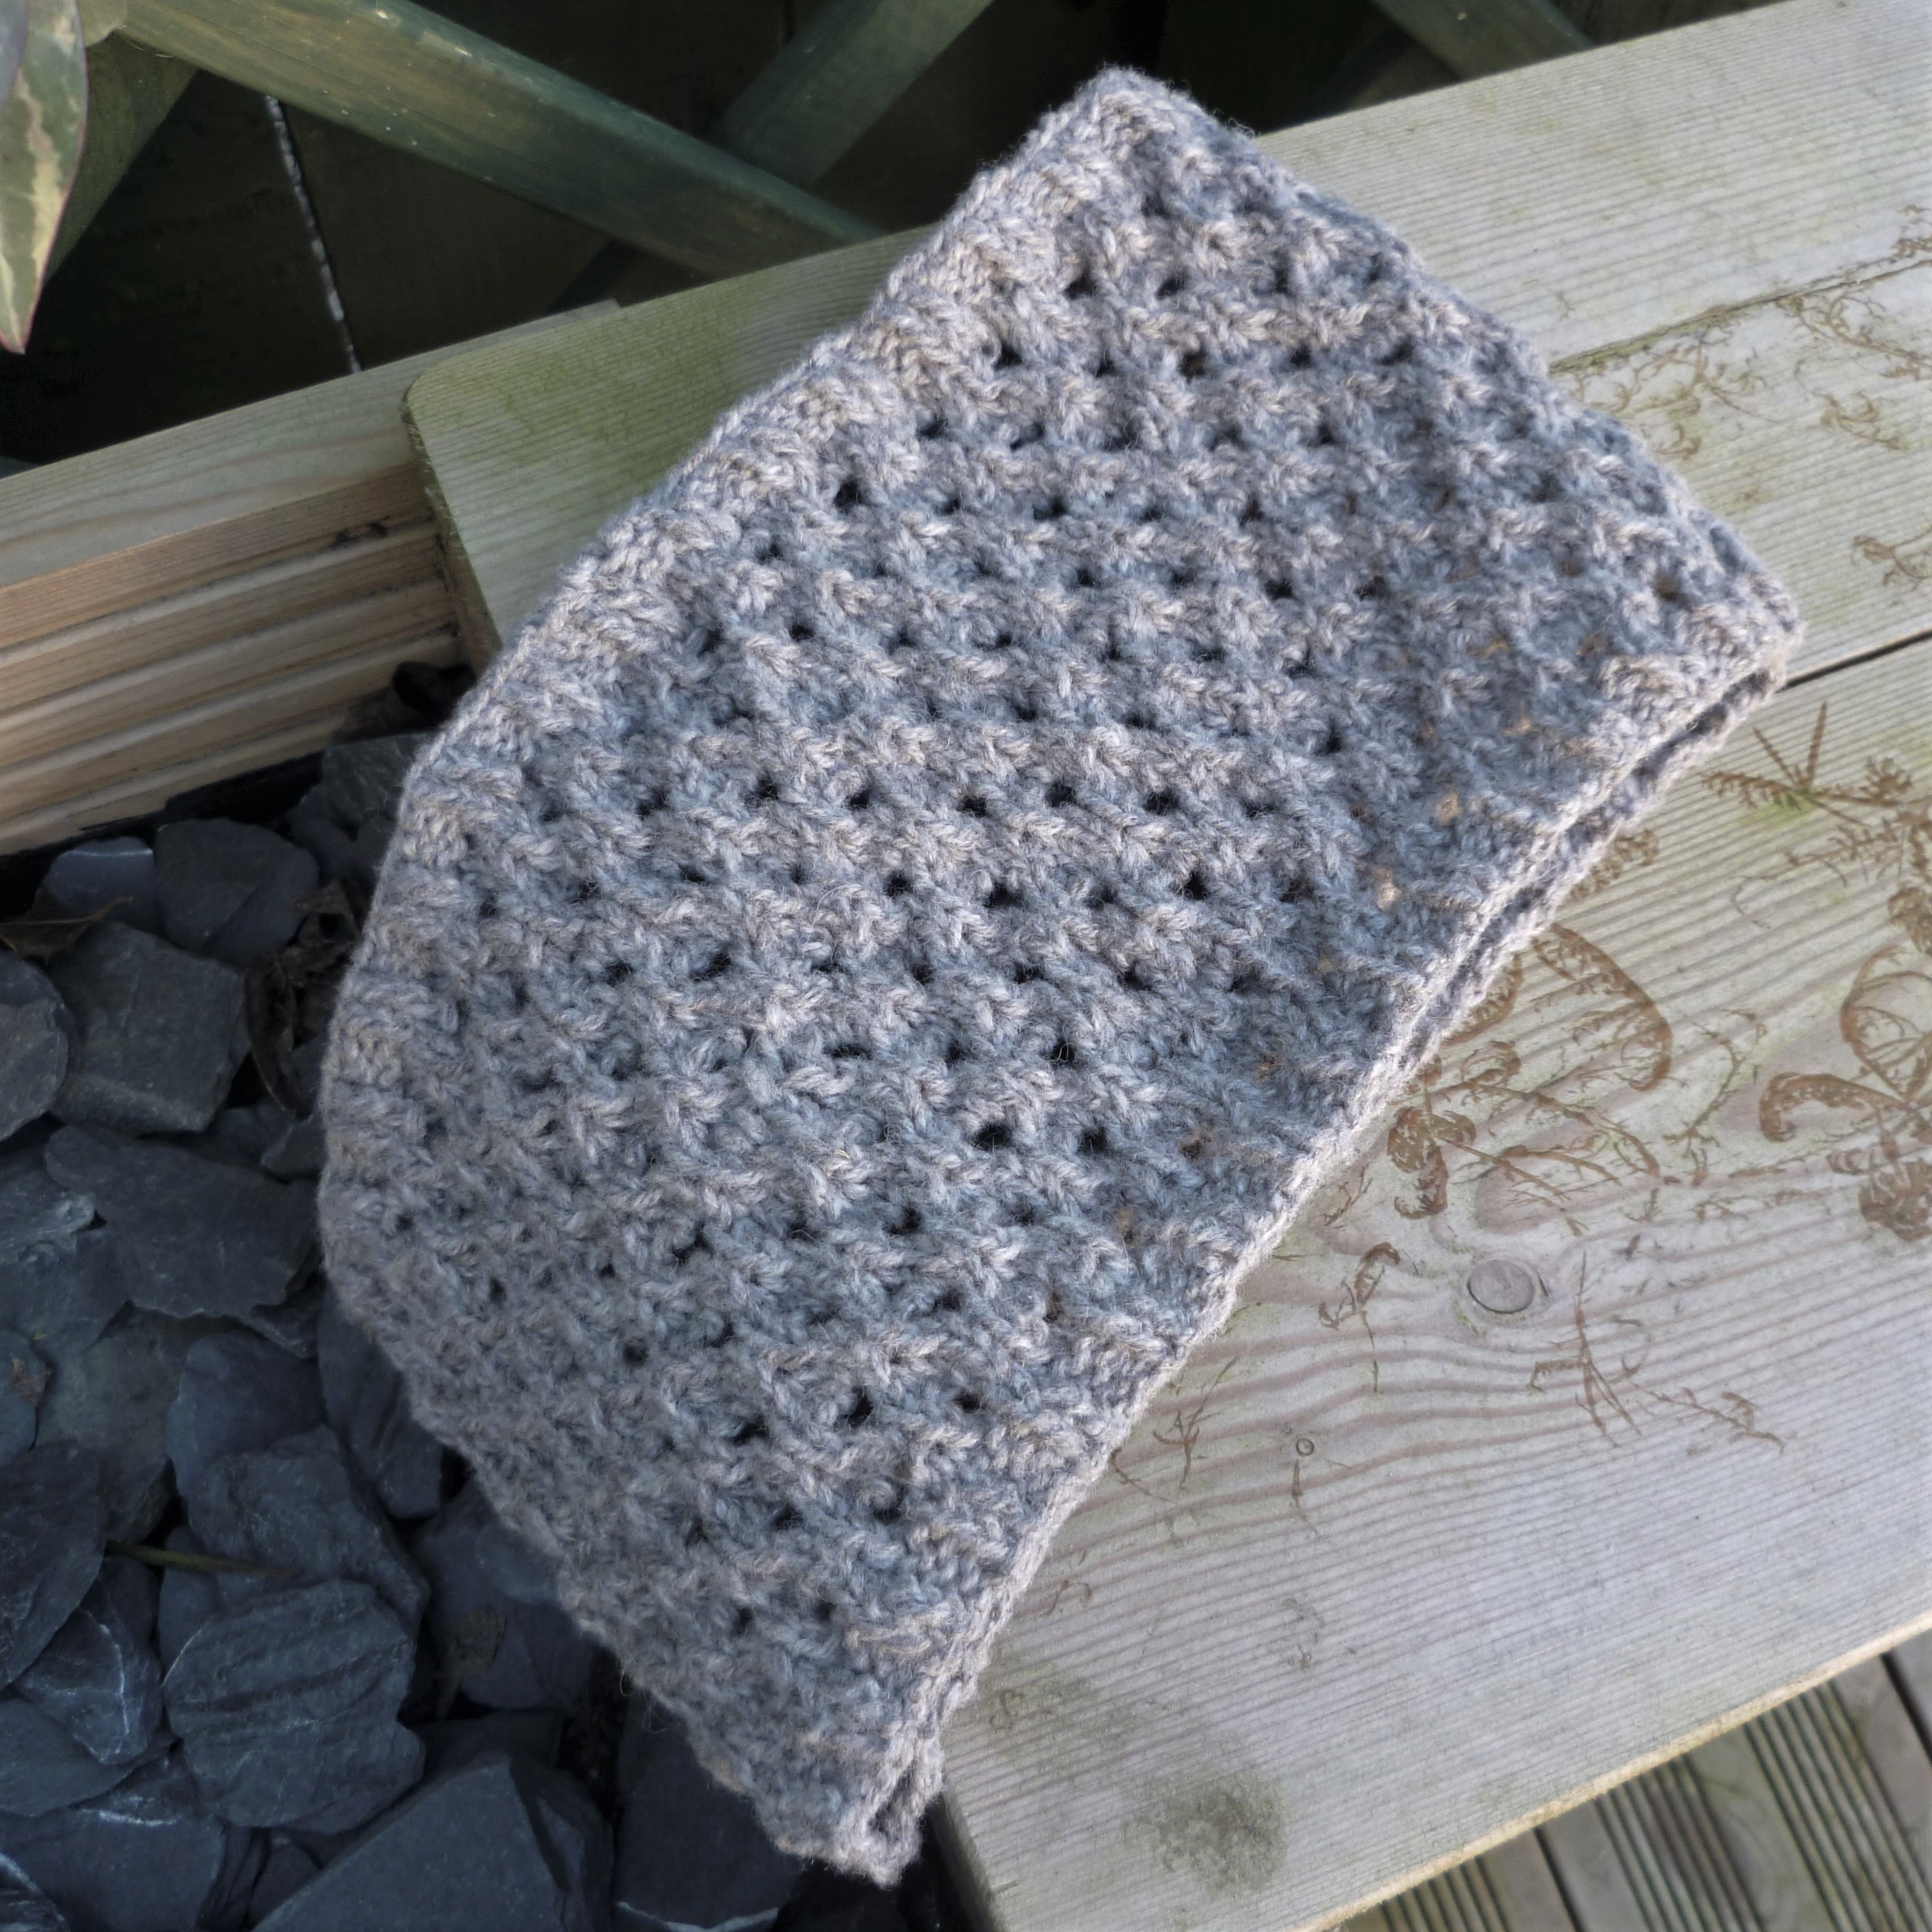 Lady Jane Cowl. Grey wool cowl with peacock lace laid across a wooden bench.